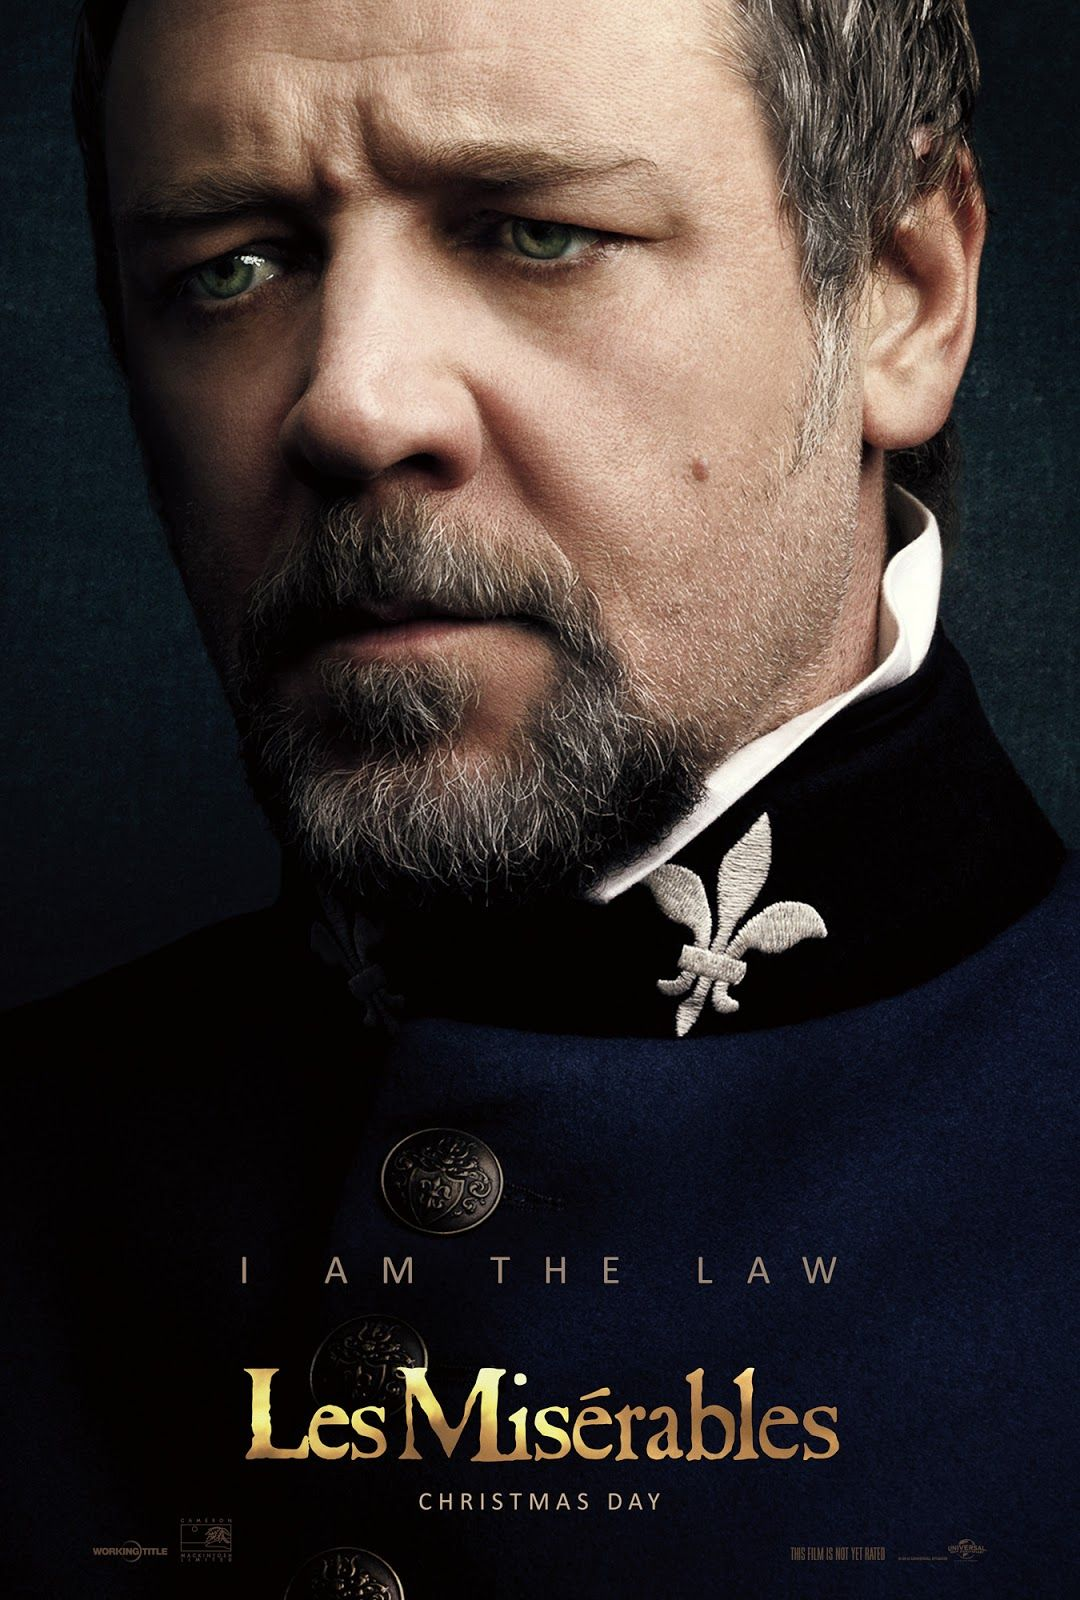 Les miserables poster. Cant wait to see this!